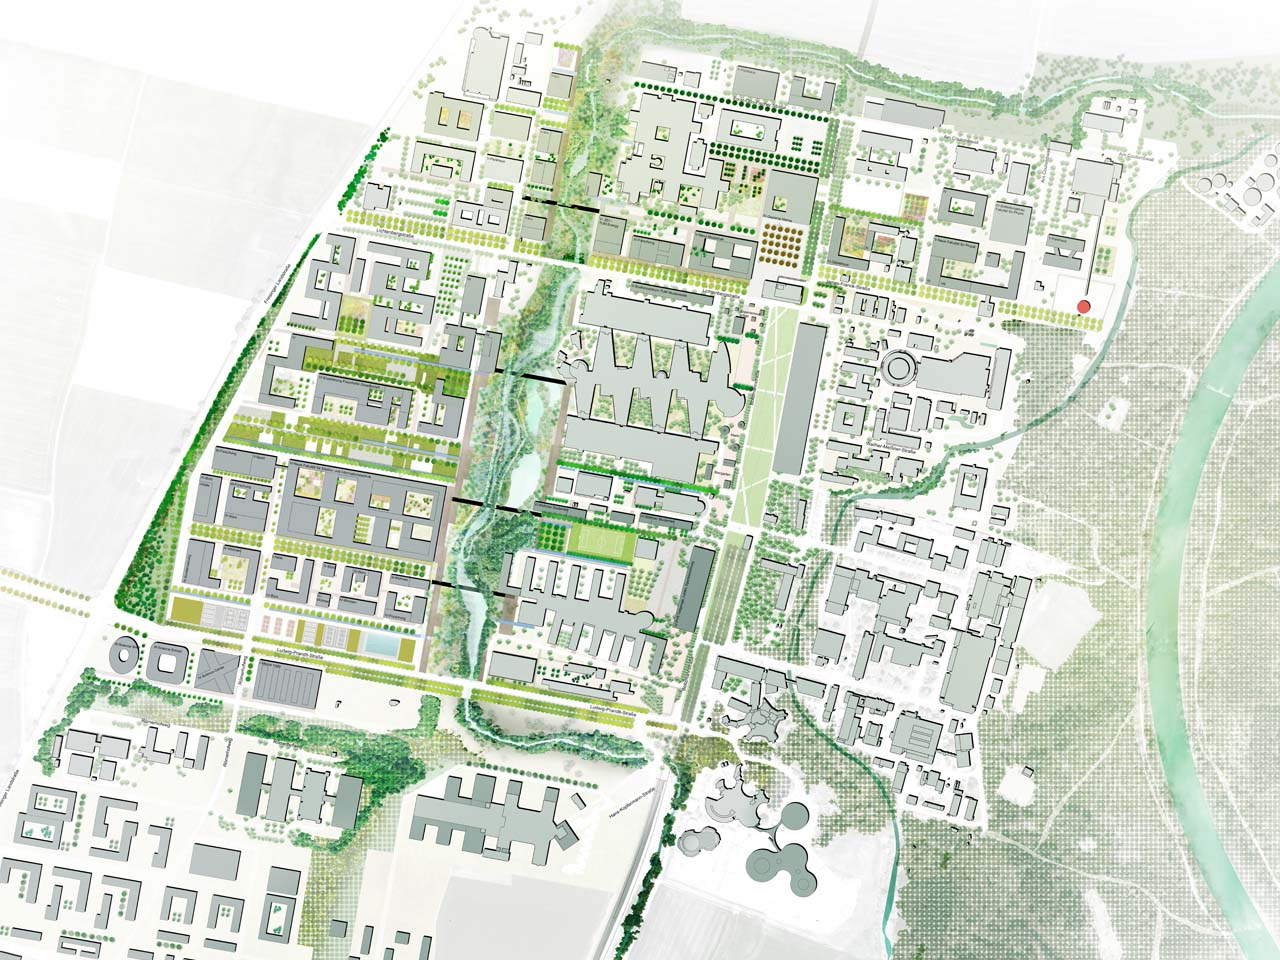 Wettbewerb science city m%c3%bcnchen garching campus fakultaet elektro und informationstechnik masterplan original